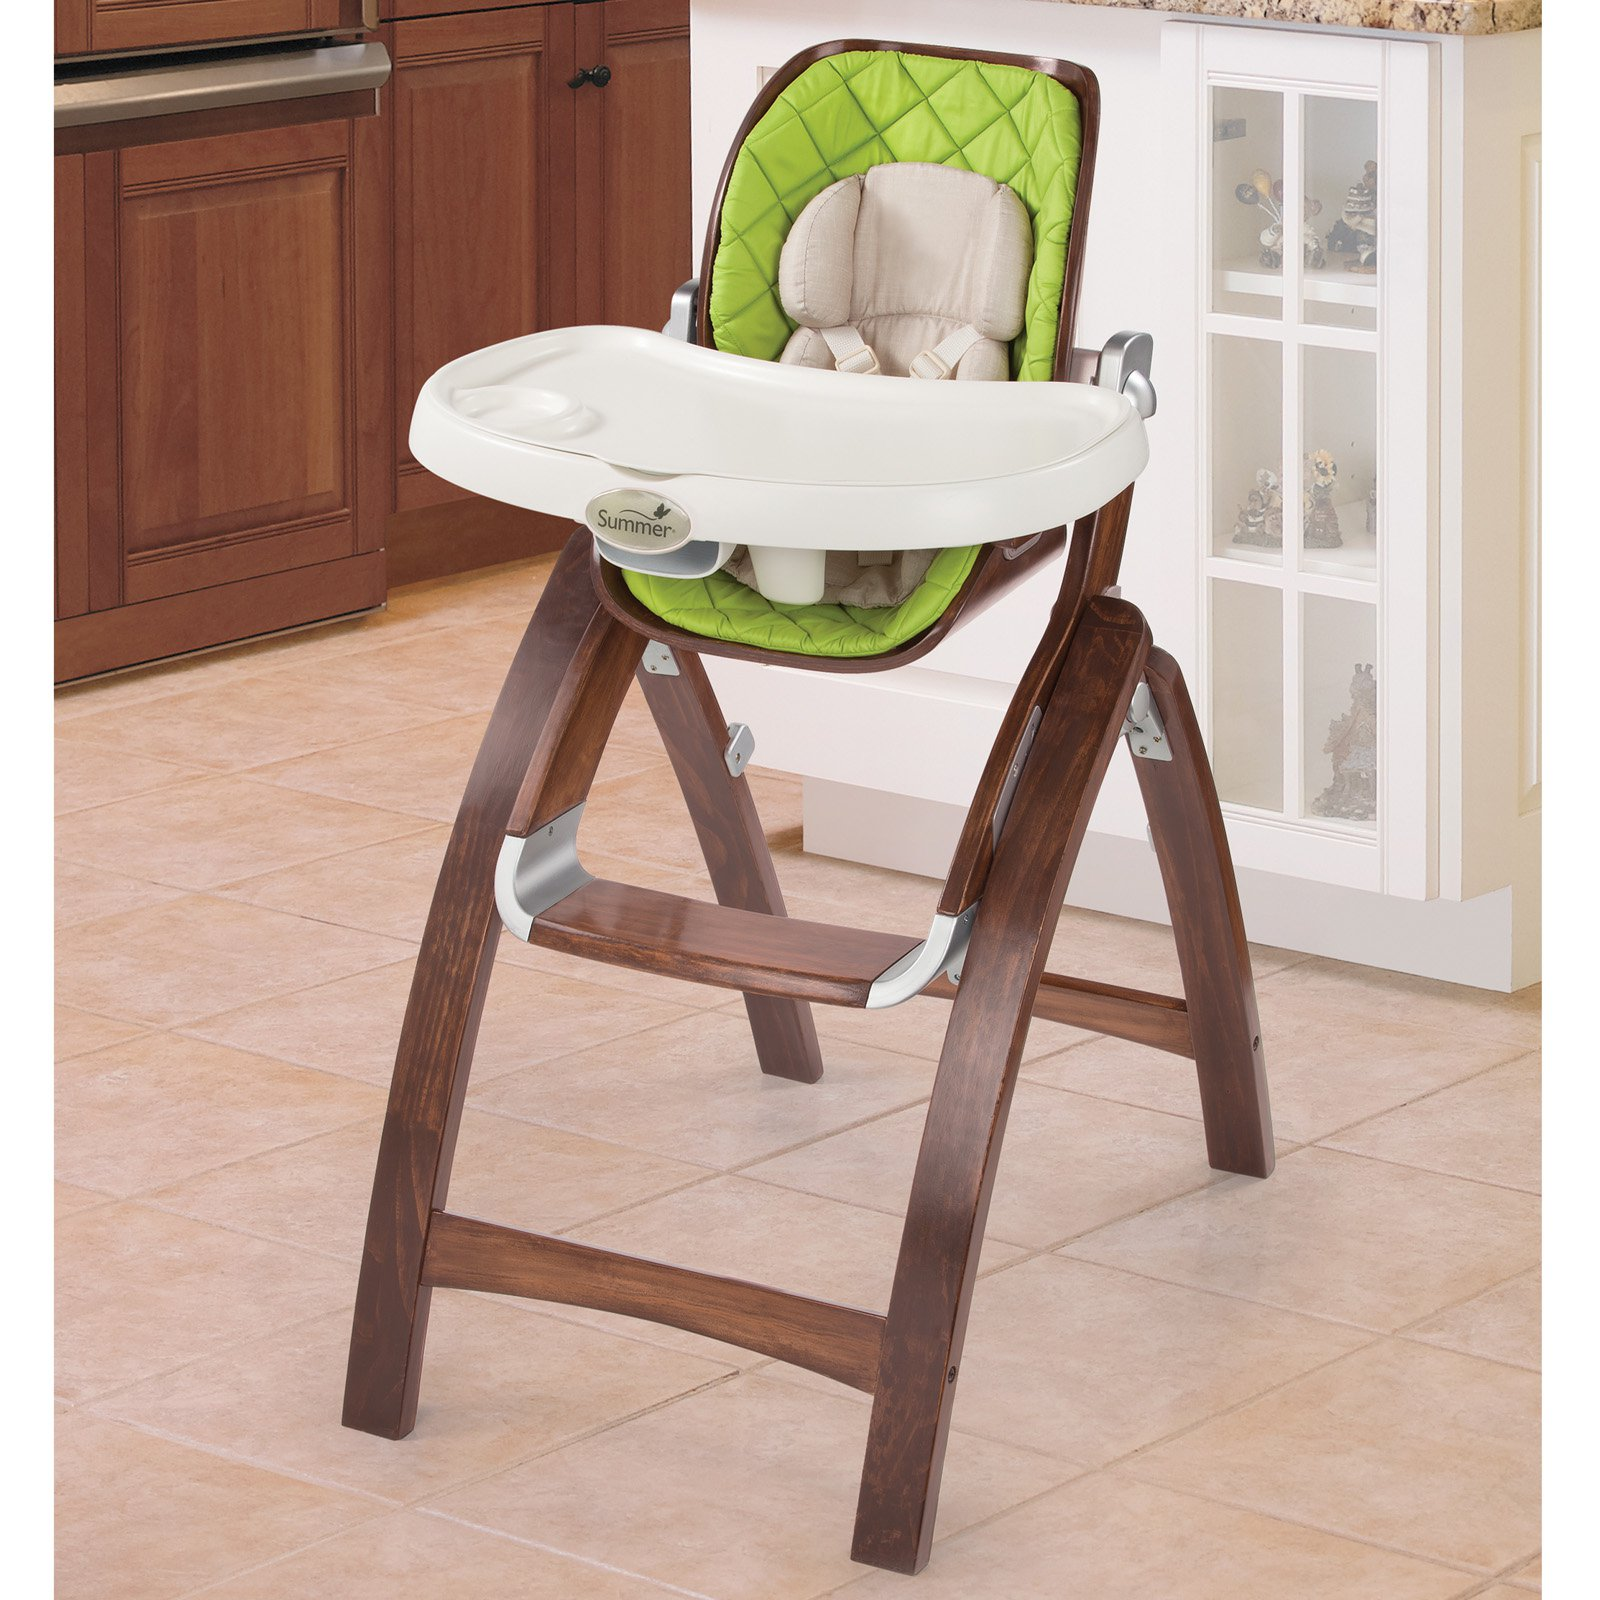 Superbe Summer Infant Bentwood High Chair